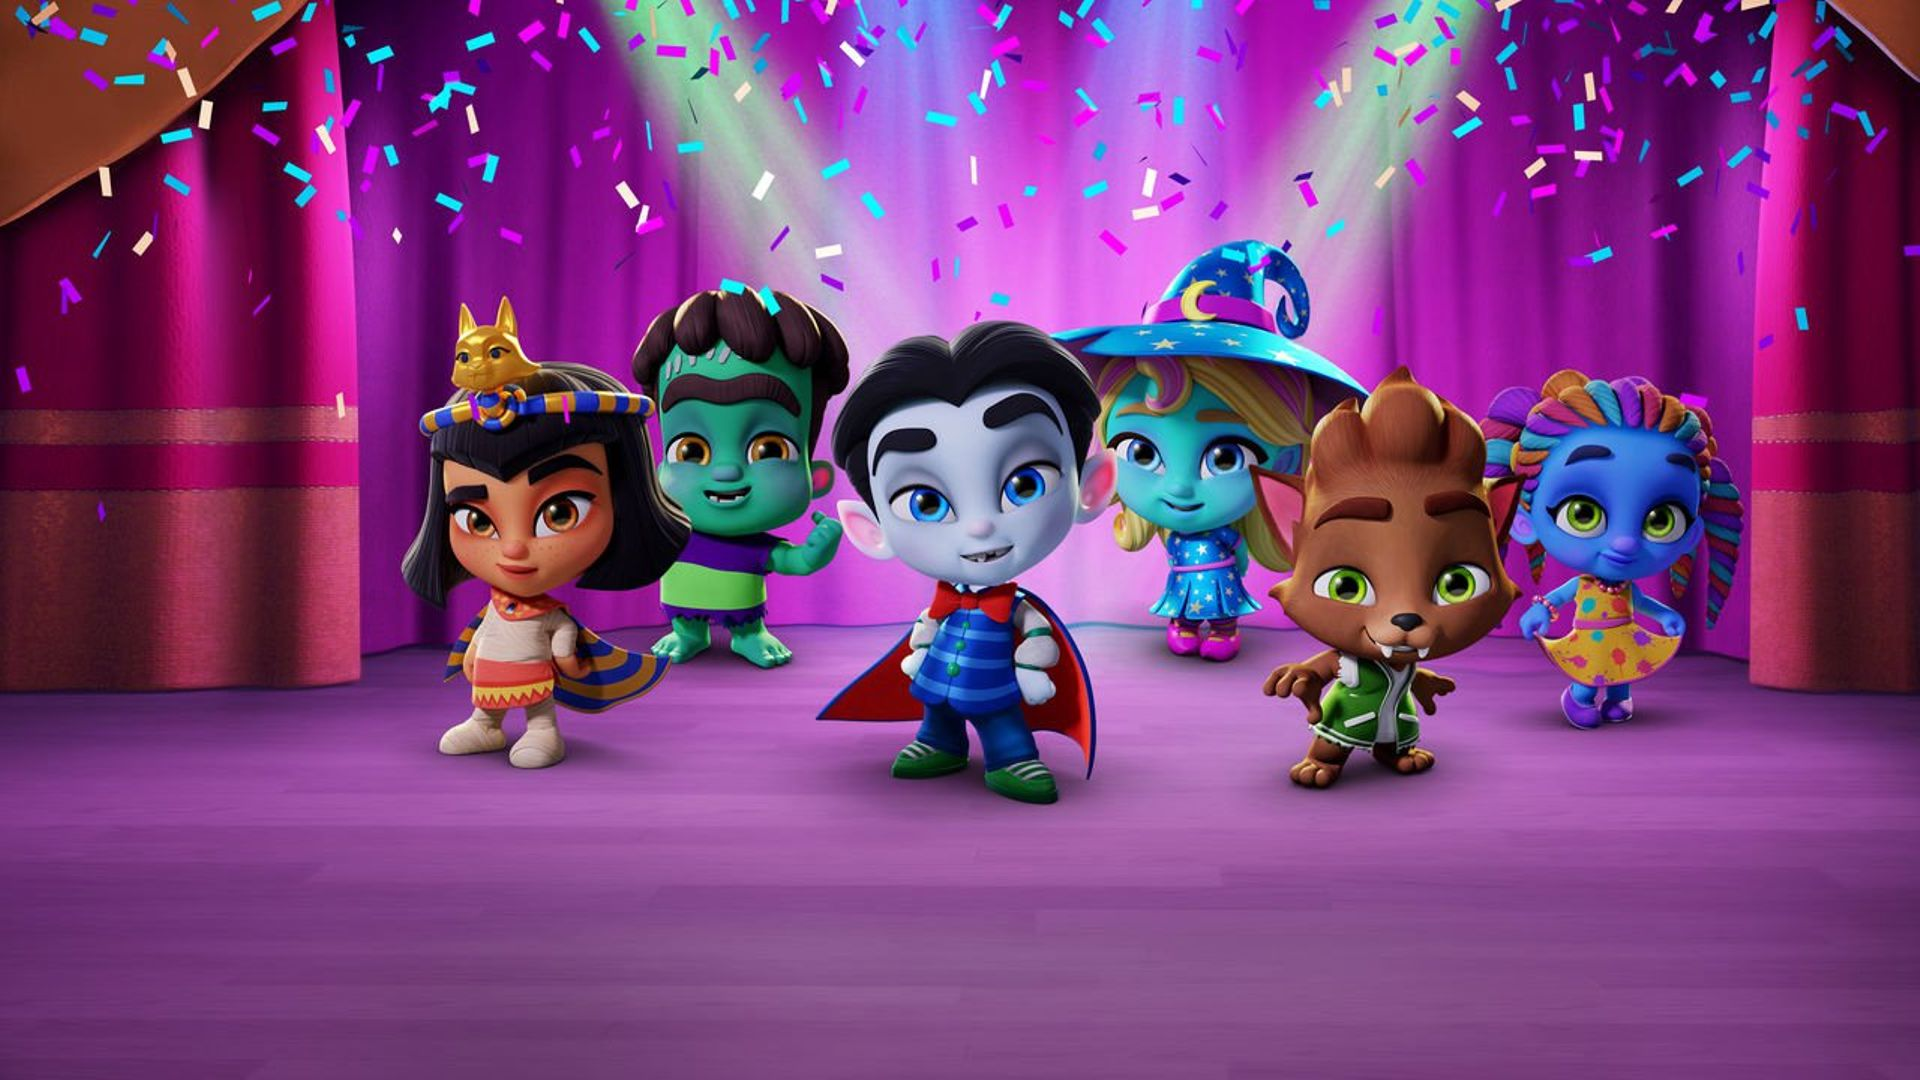 The Best Super Monsters Wallpapers All Details You Need to Know 1920x1080